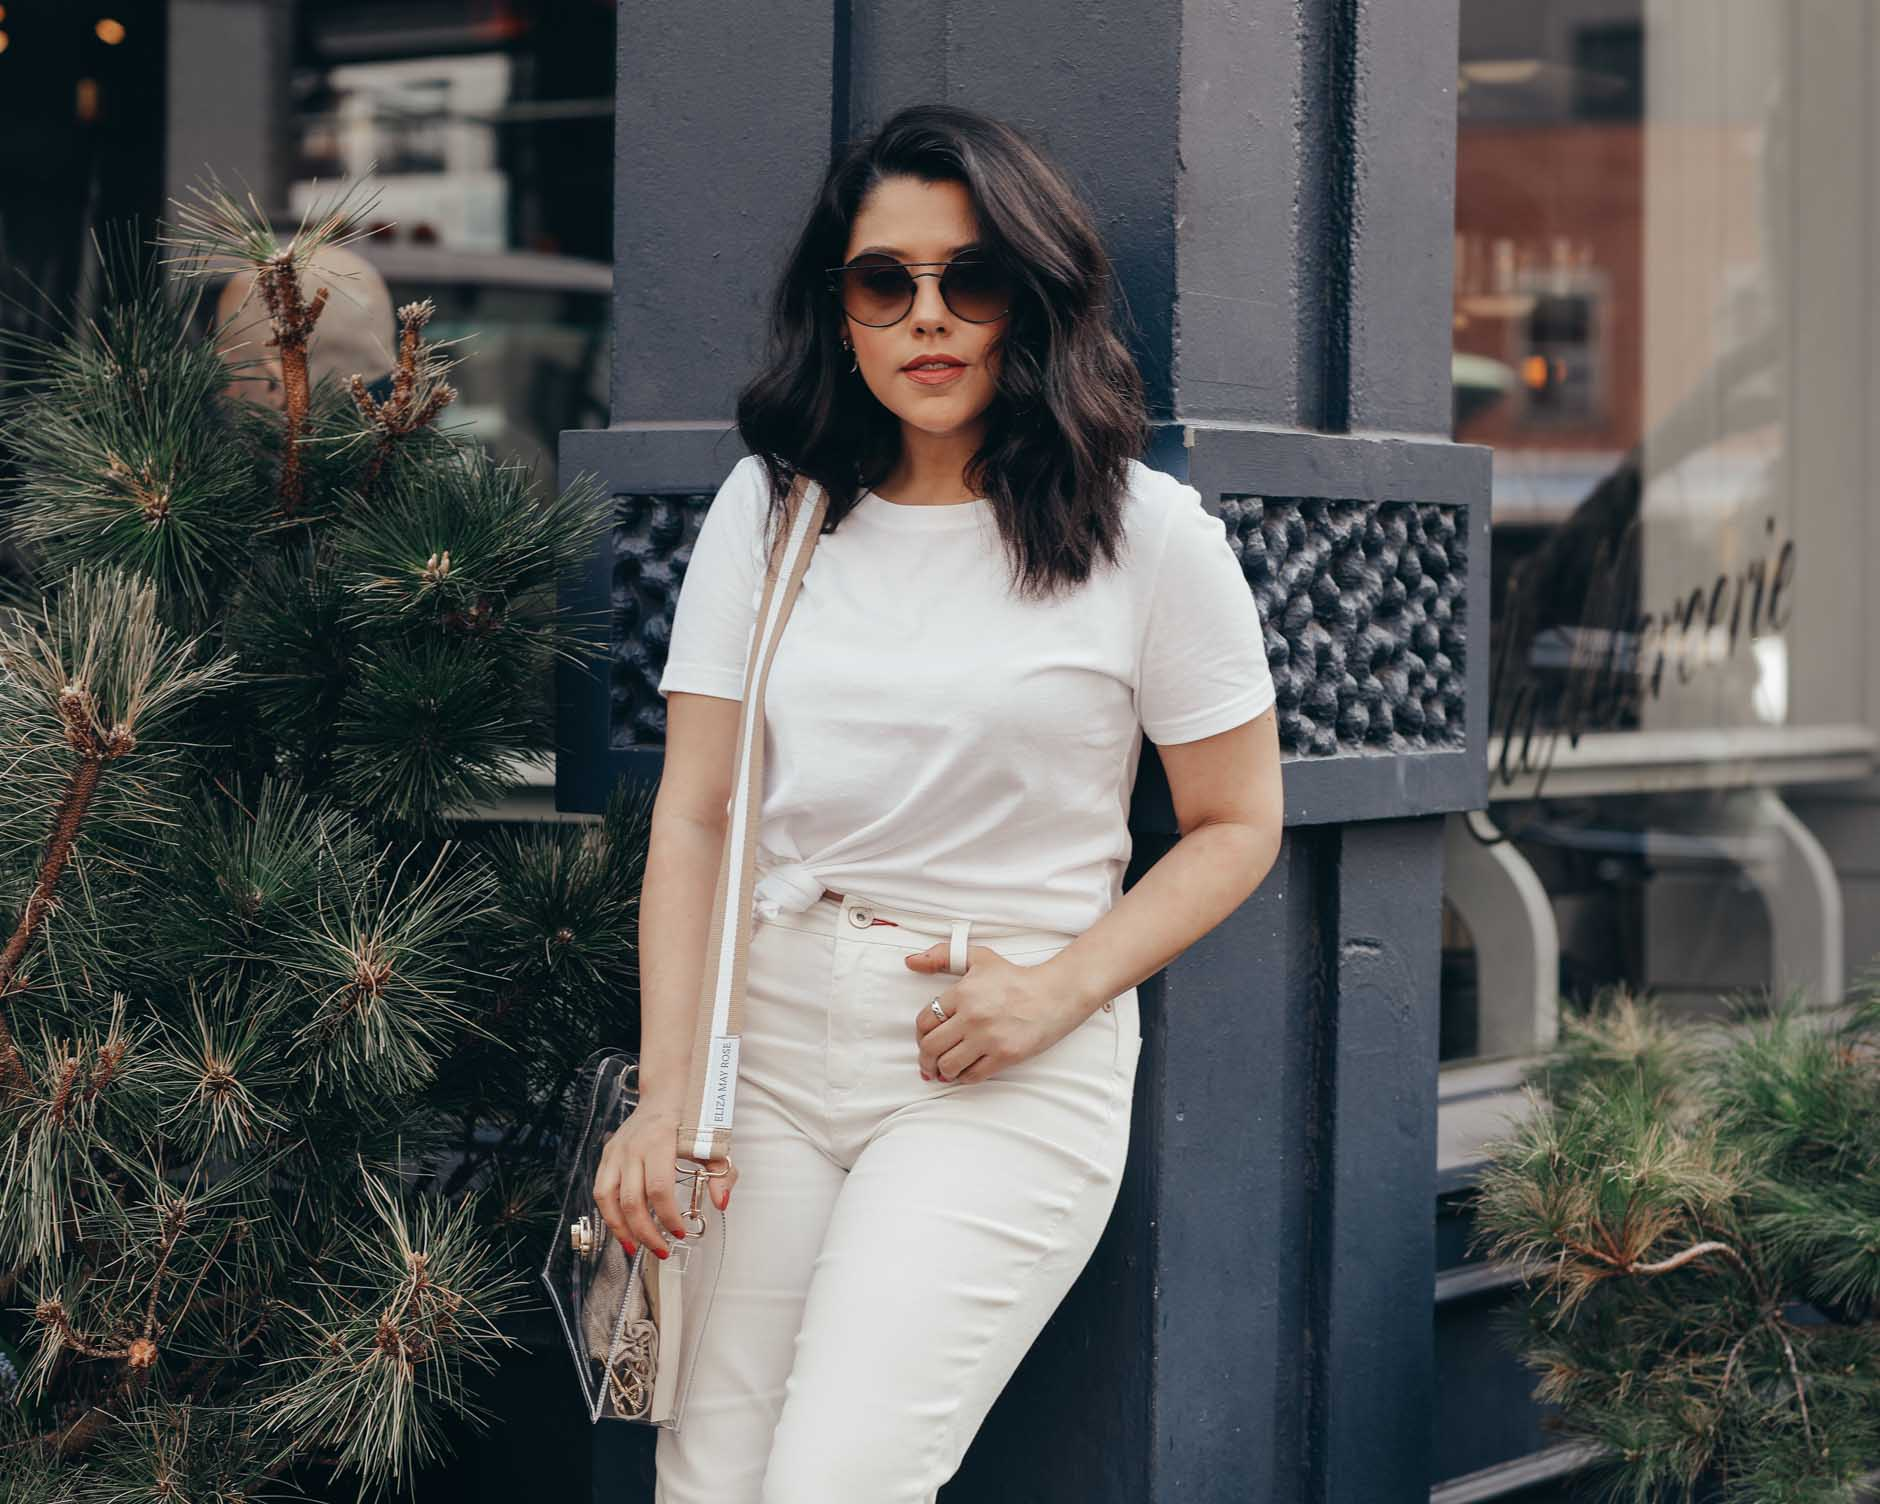 naty michele wearing all white in soho ny for we dress america